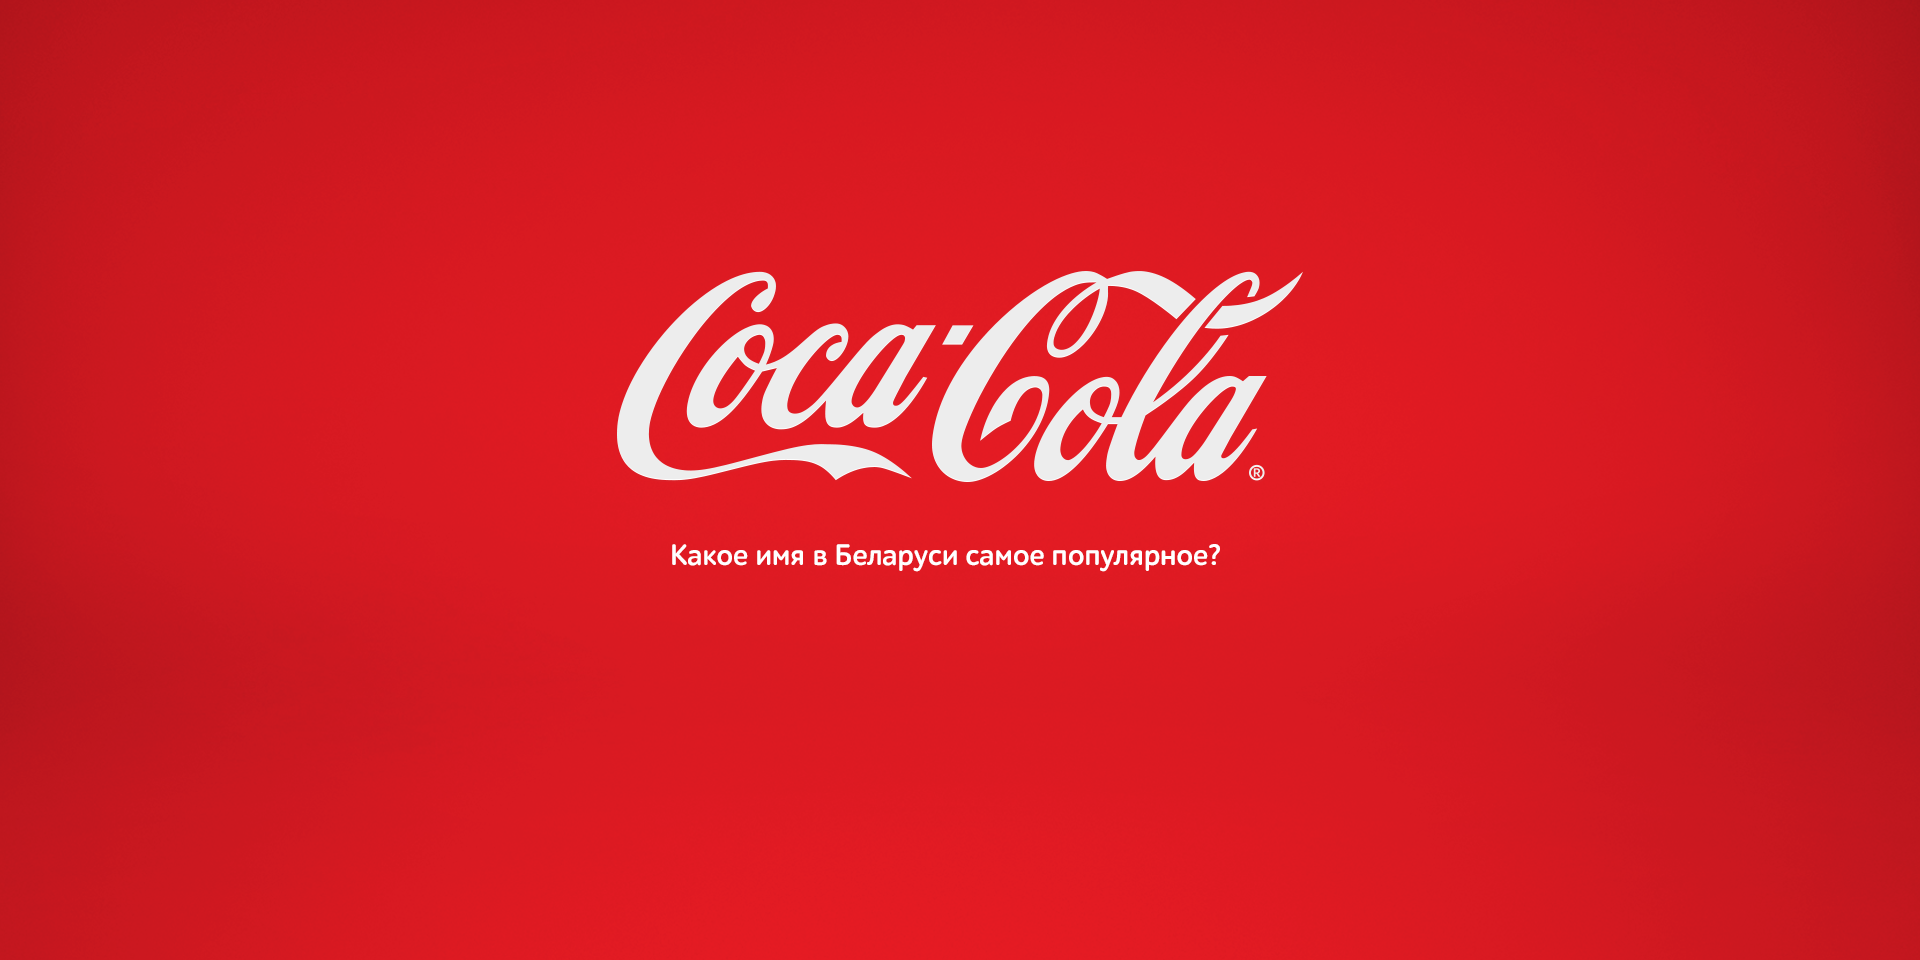 Realistic 3D Coca Cola Can in Photoshop 300+ free Photoshop